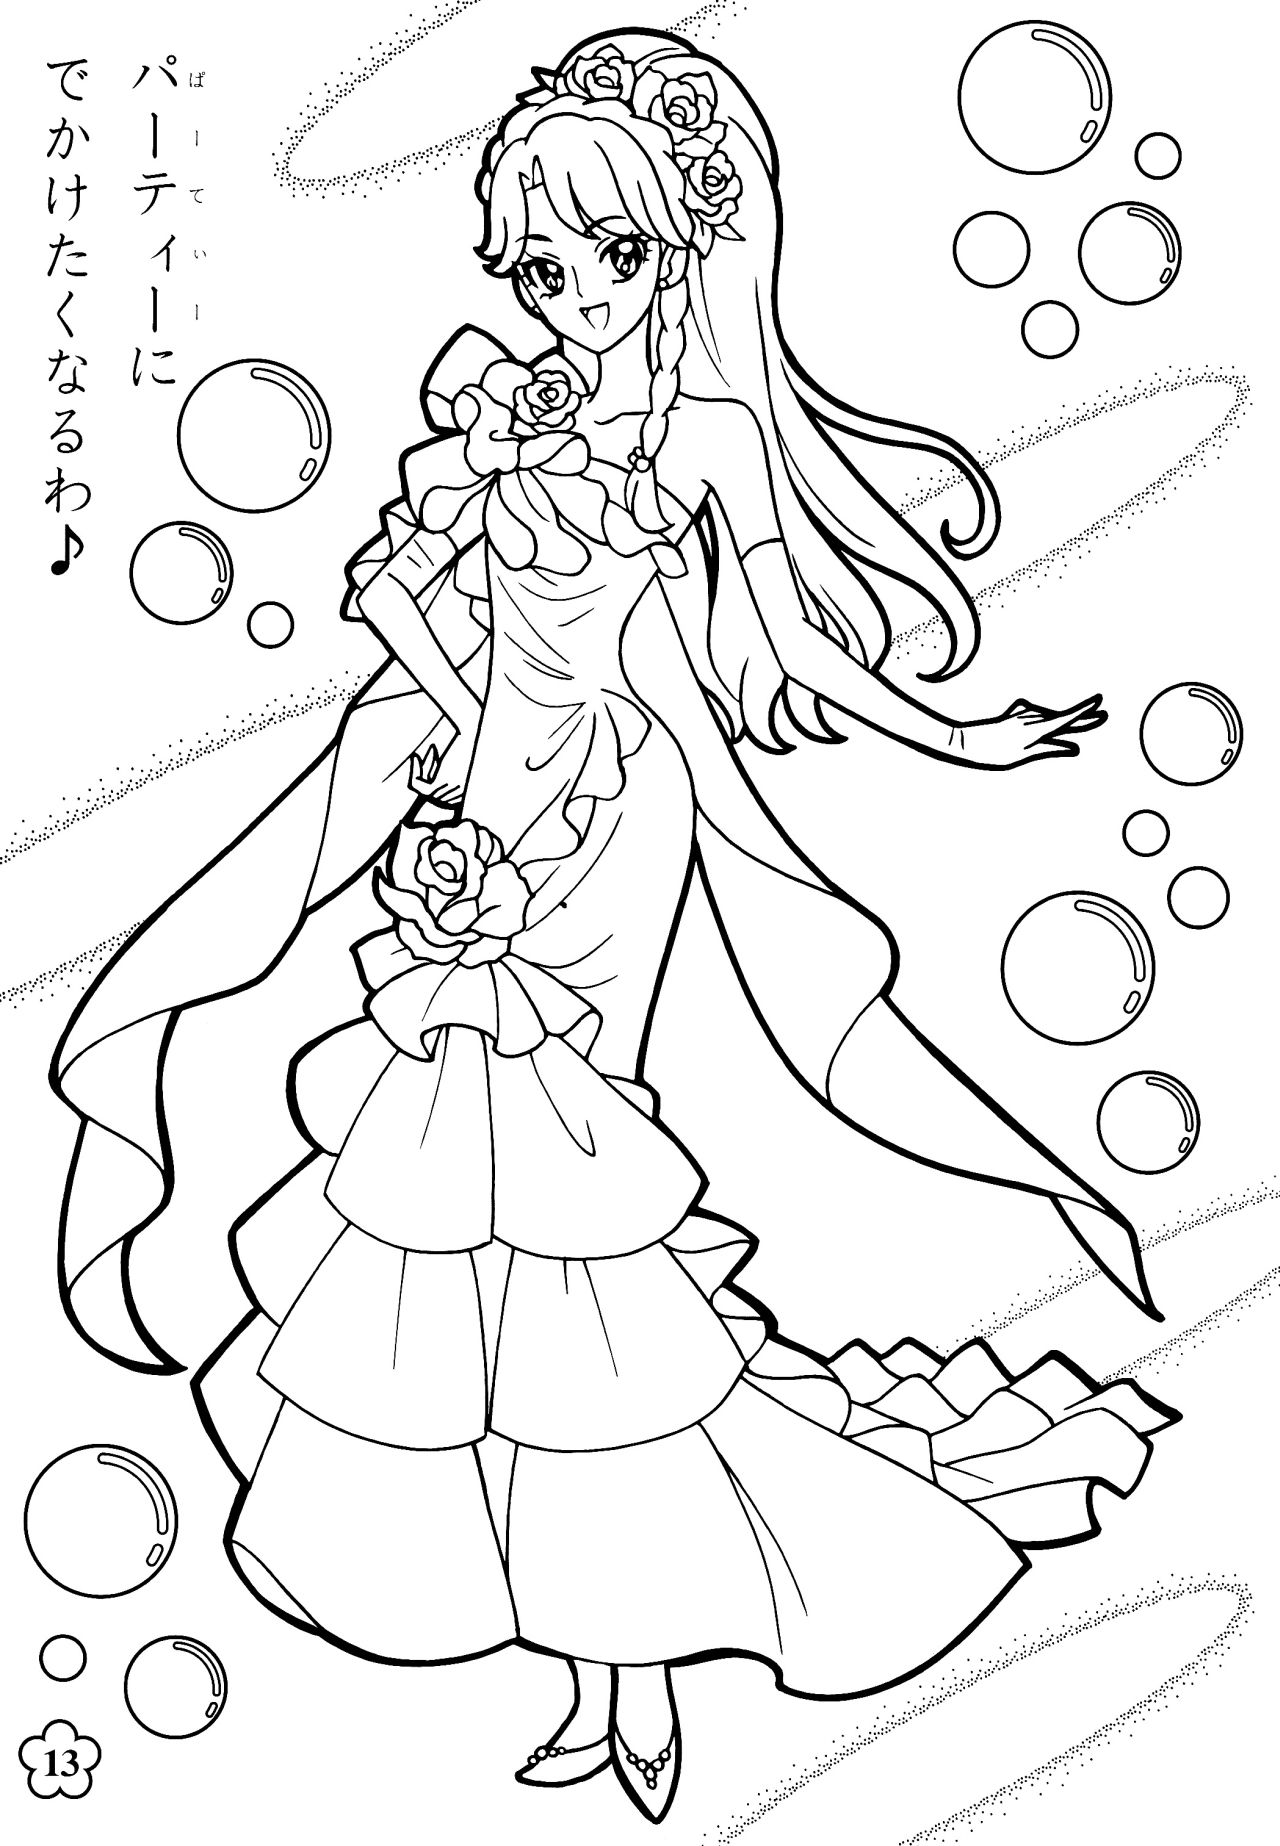 mahou tsukai precure | anime coloring pages! | プリキュア ぬりえ